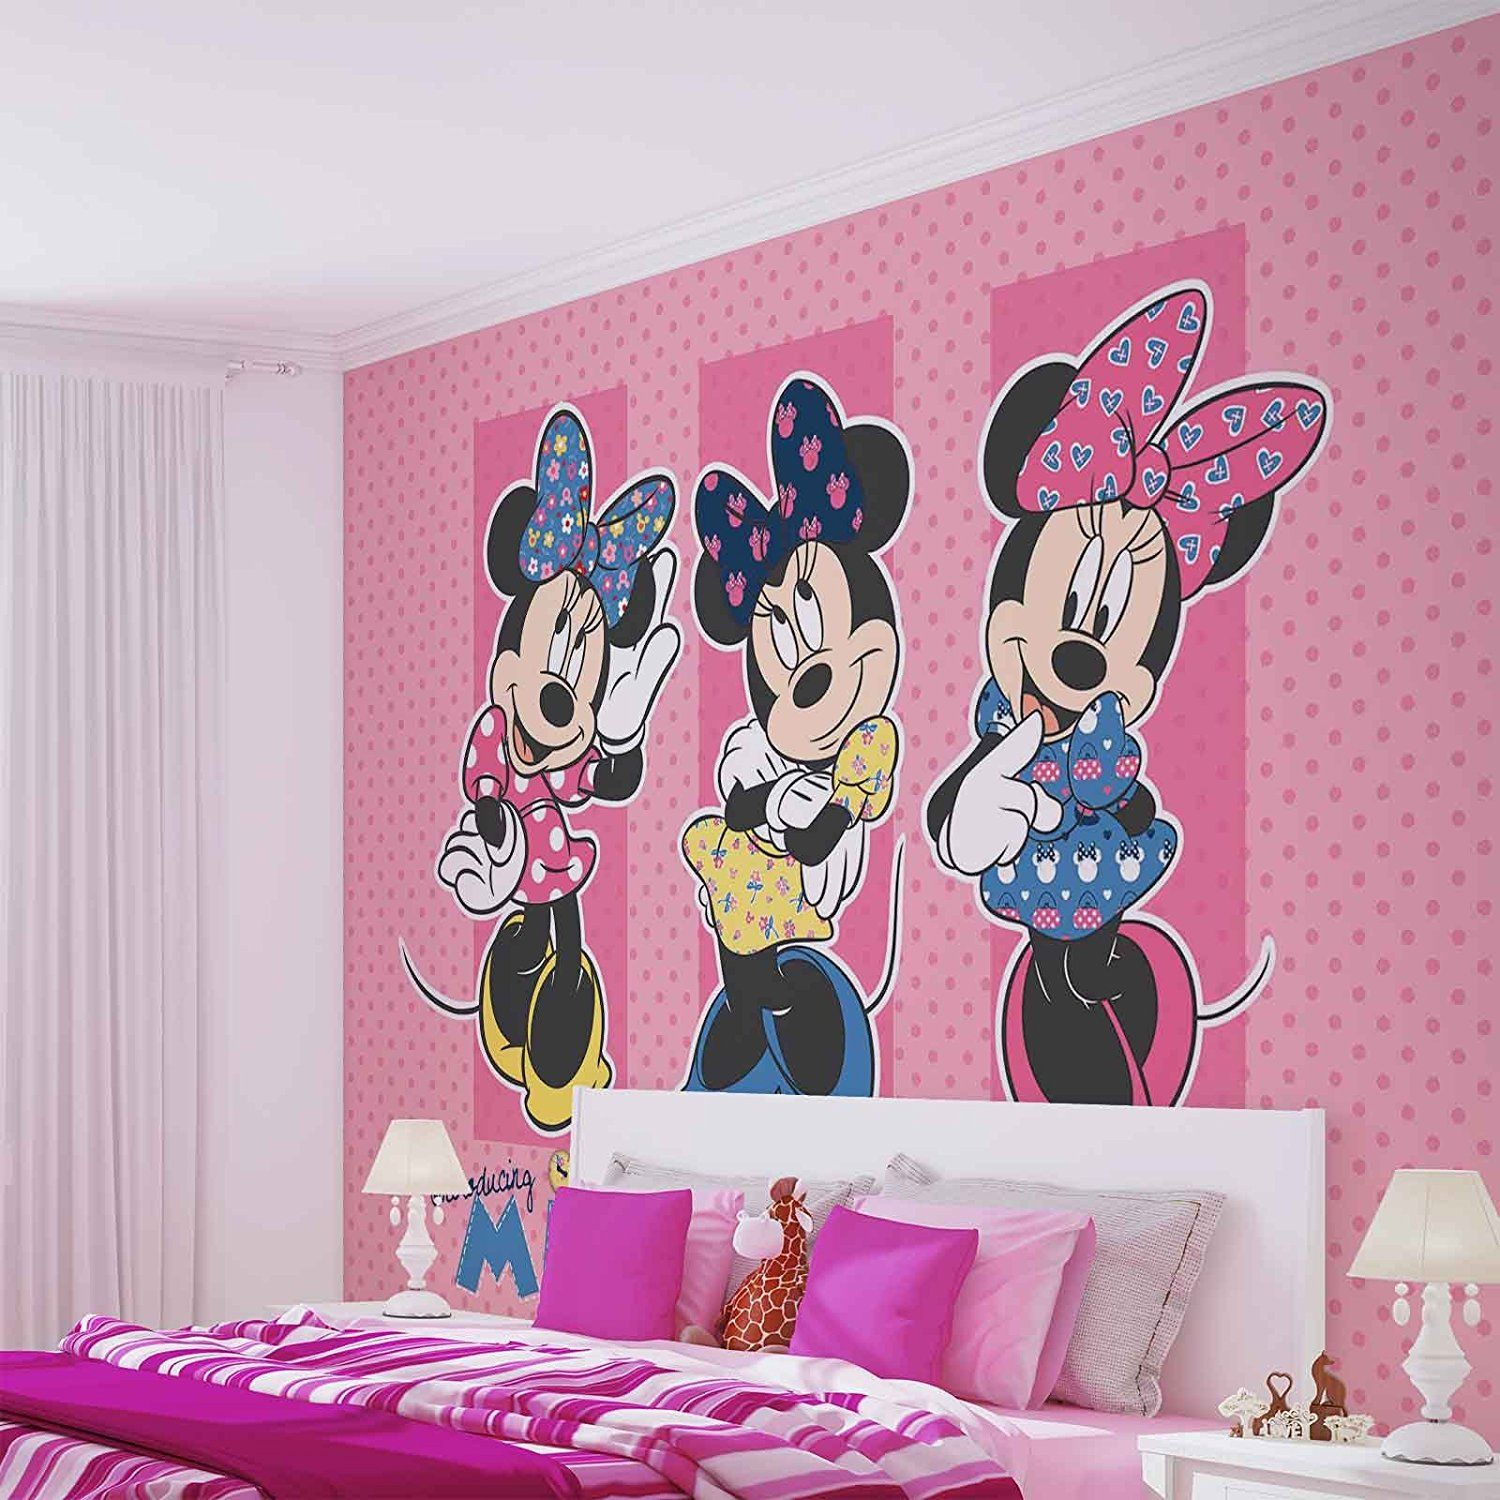 Wallpaper Kinderzimmer minnie mouse forwall fototapete tapete fotomural mural